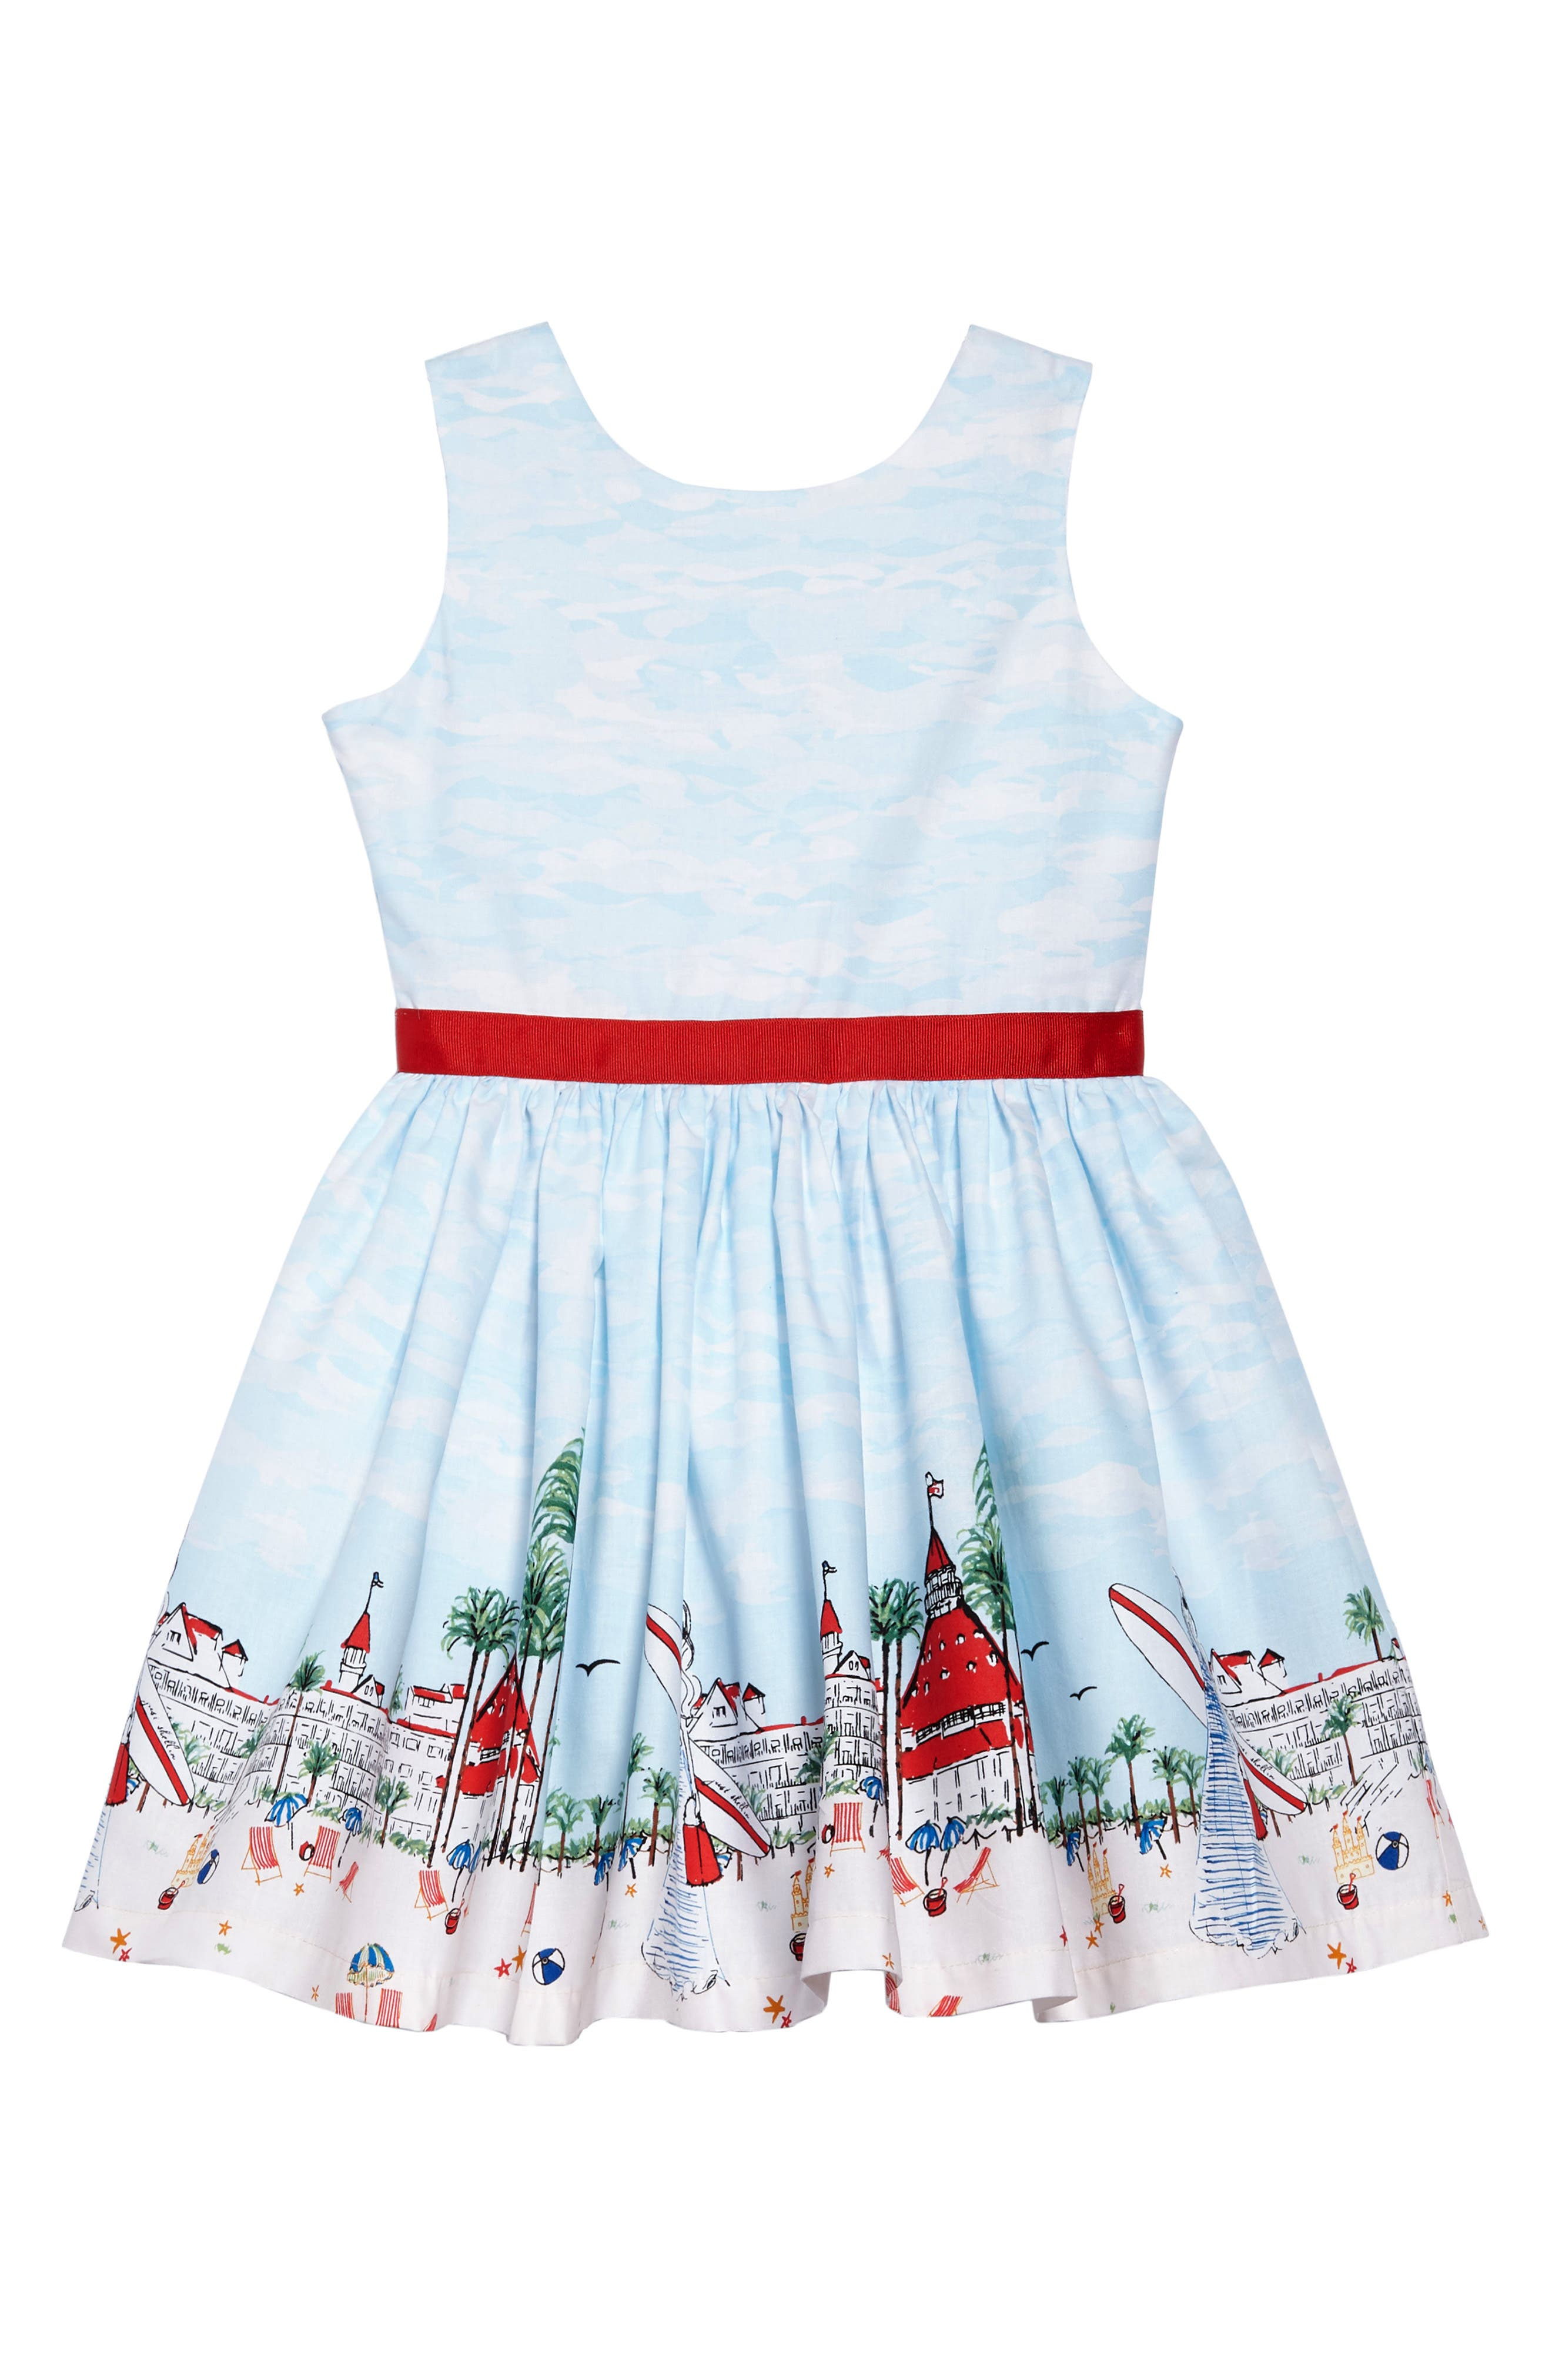 Fiveloaves Twofish Just Shellin Party Dress (Toddler Girls, Little Girls & Big Girls)